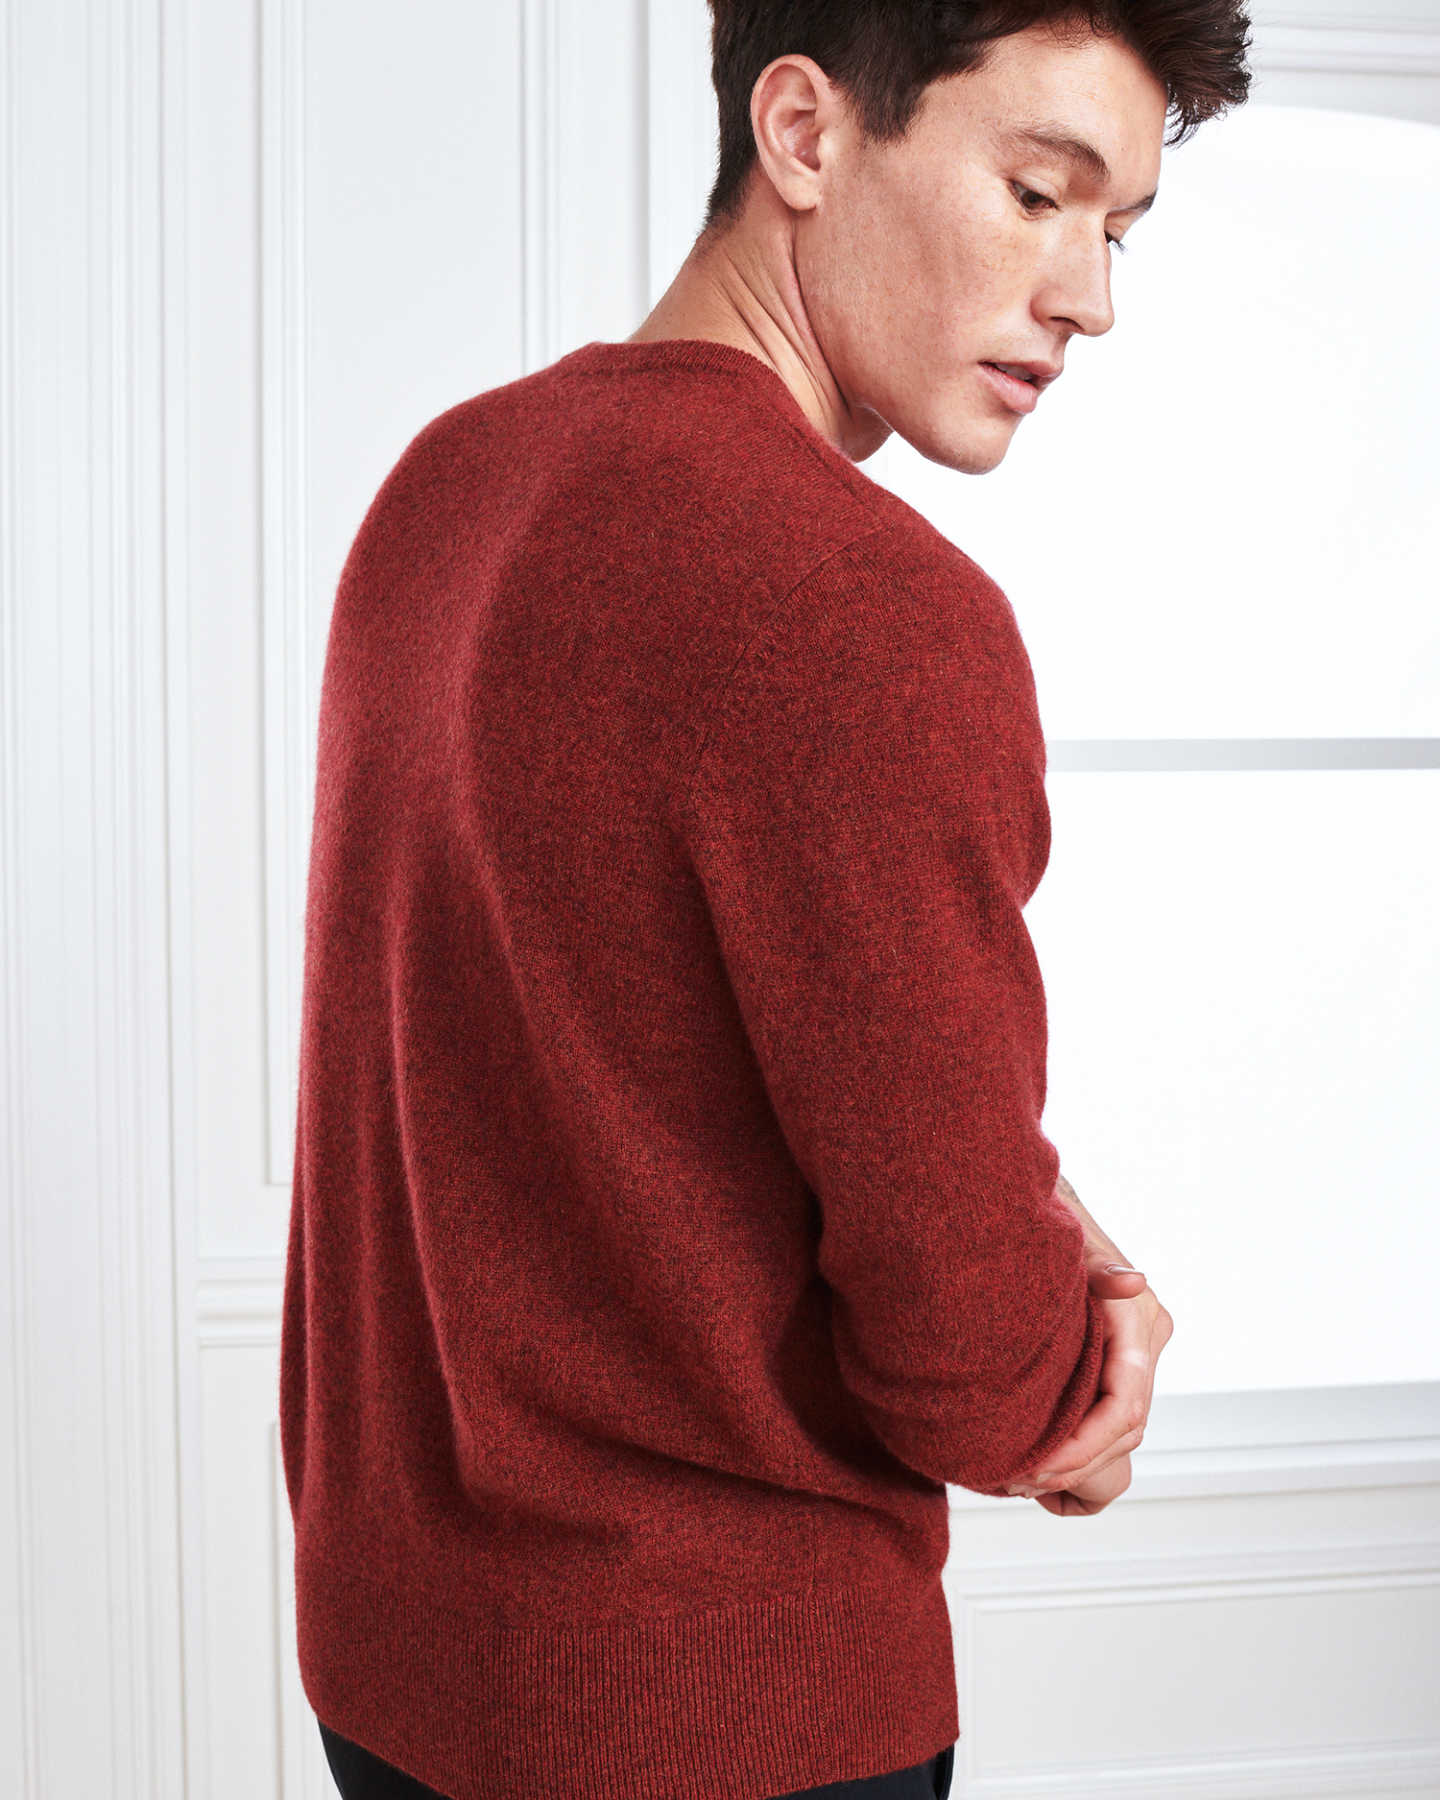 Man wearing red men's cashmere sweater from back